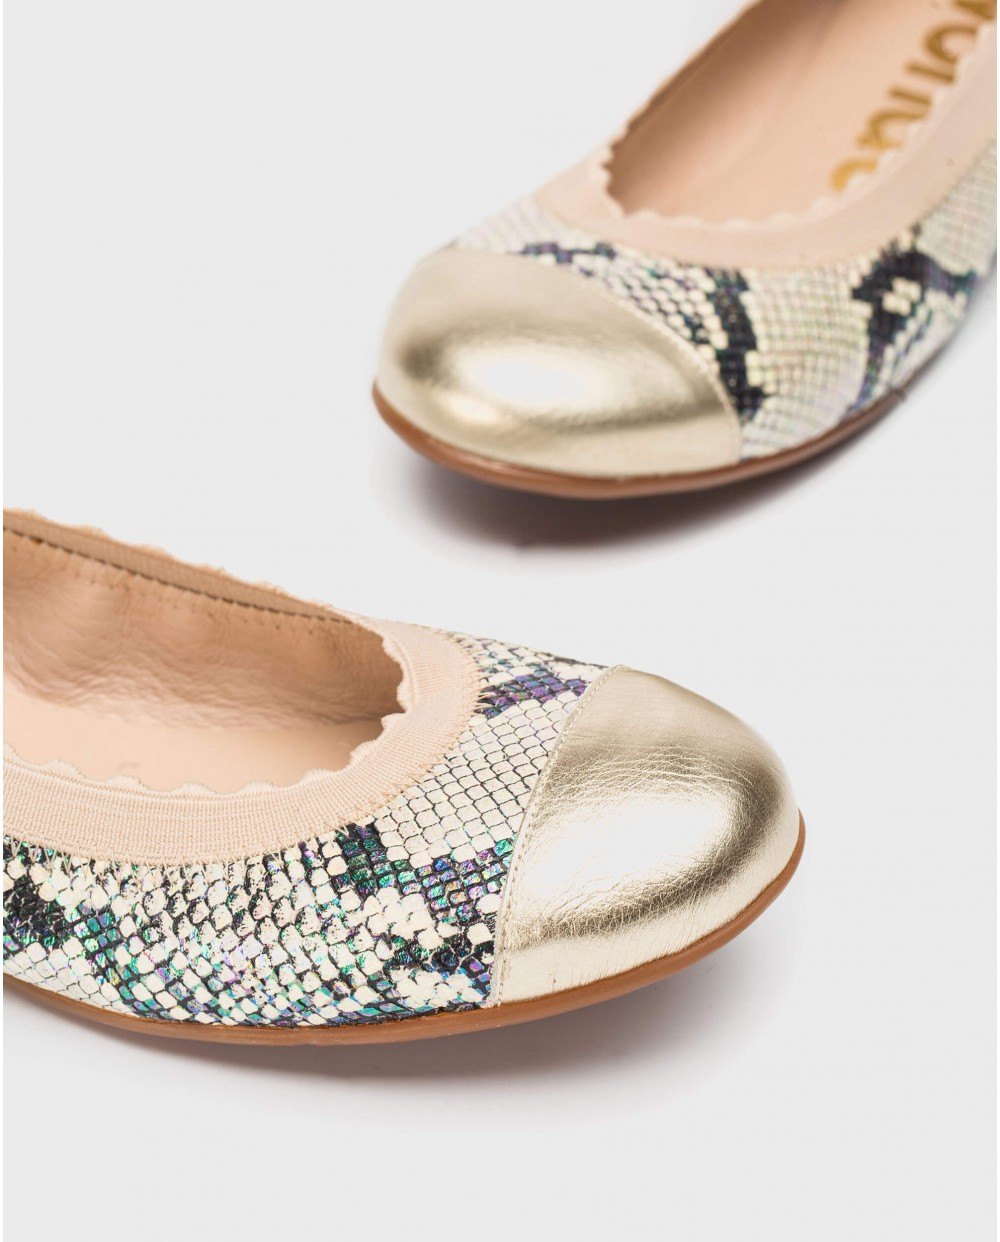 Wonders-Flat Shoes-Ballet pumps with metallic toe cap